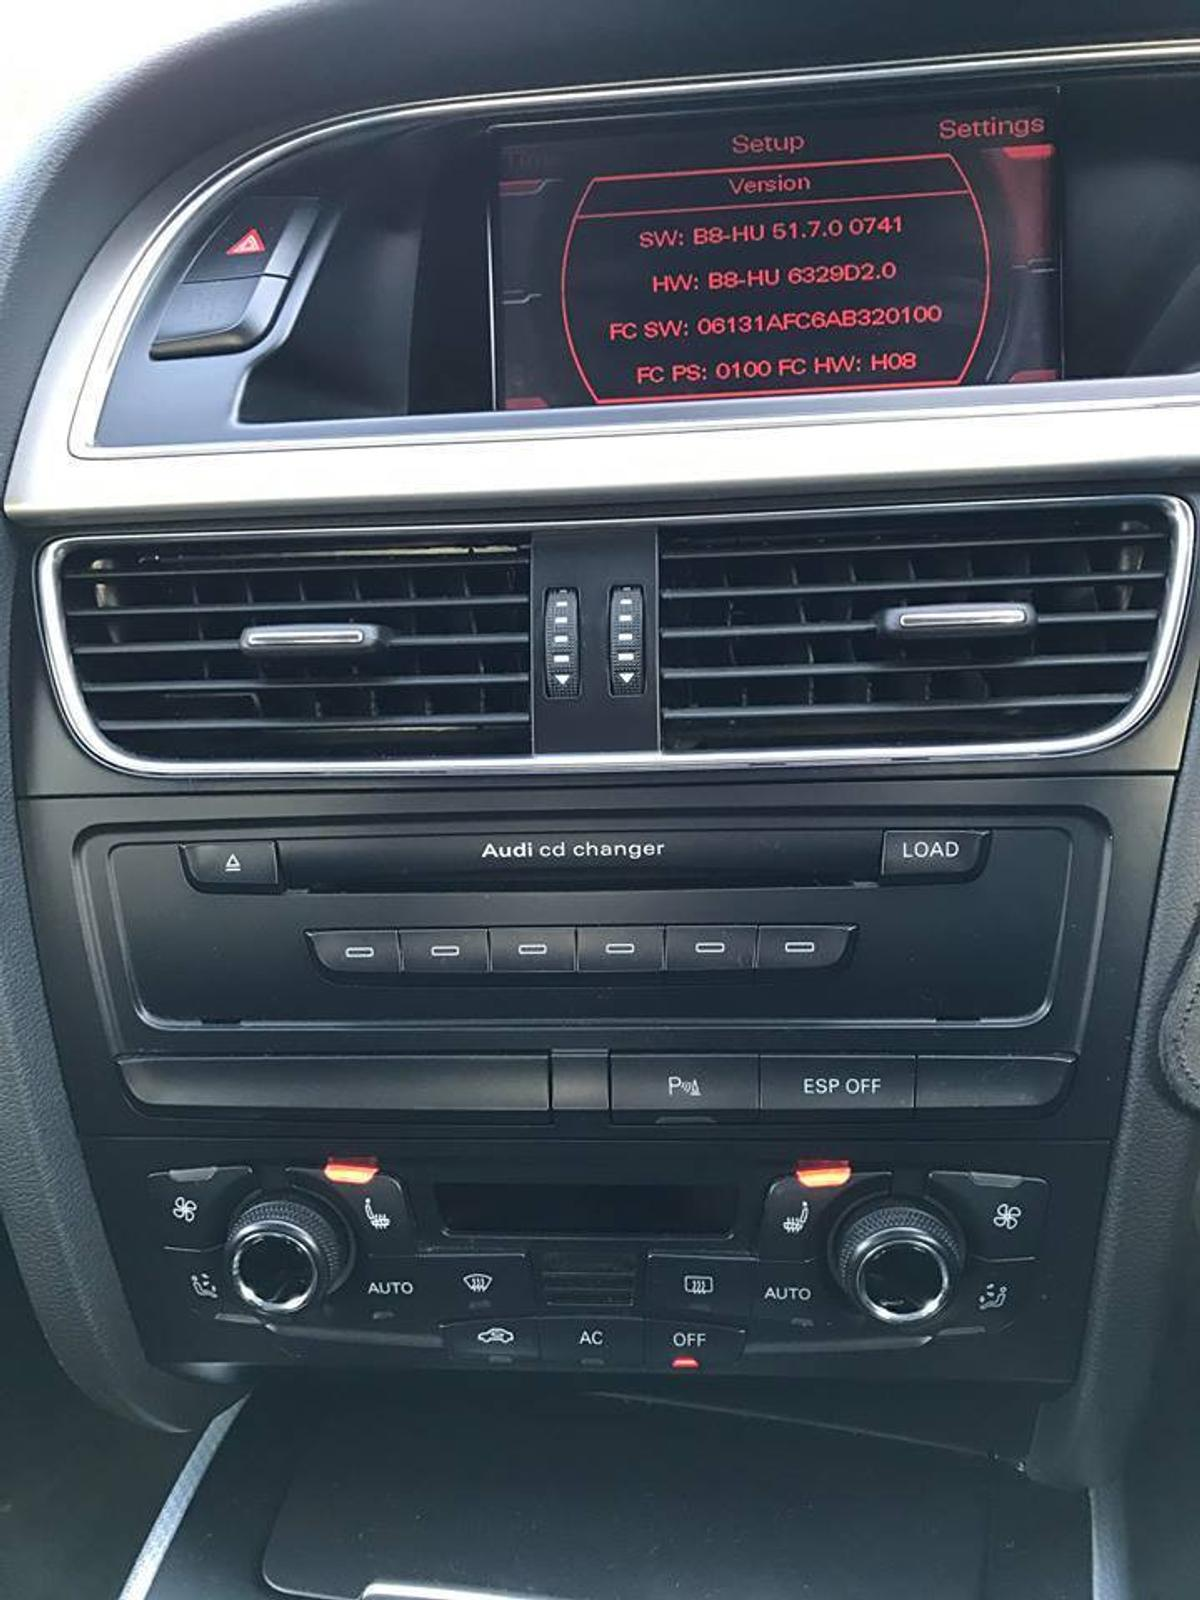 AUDI MMI 2G HIGH NAVIGATION DVD 2018 EUROPE in W9 Westminster for